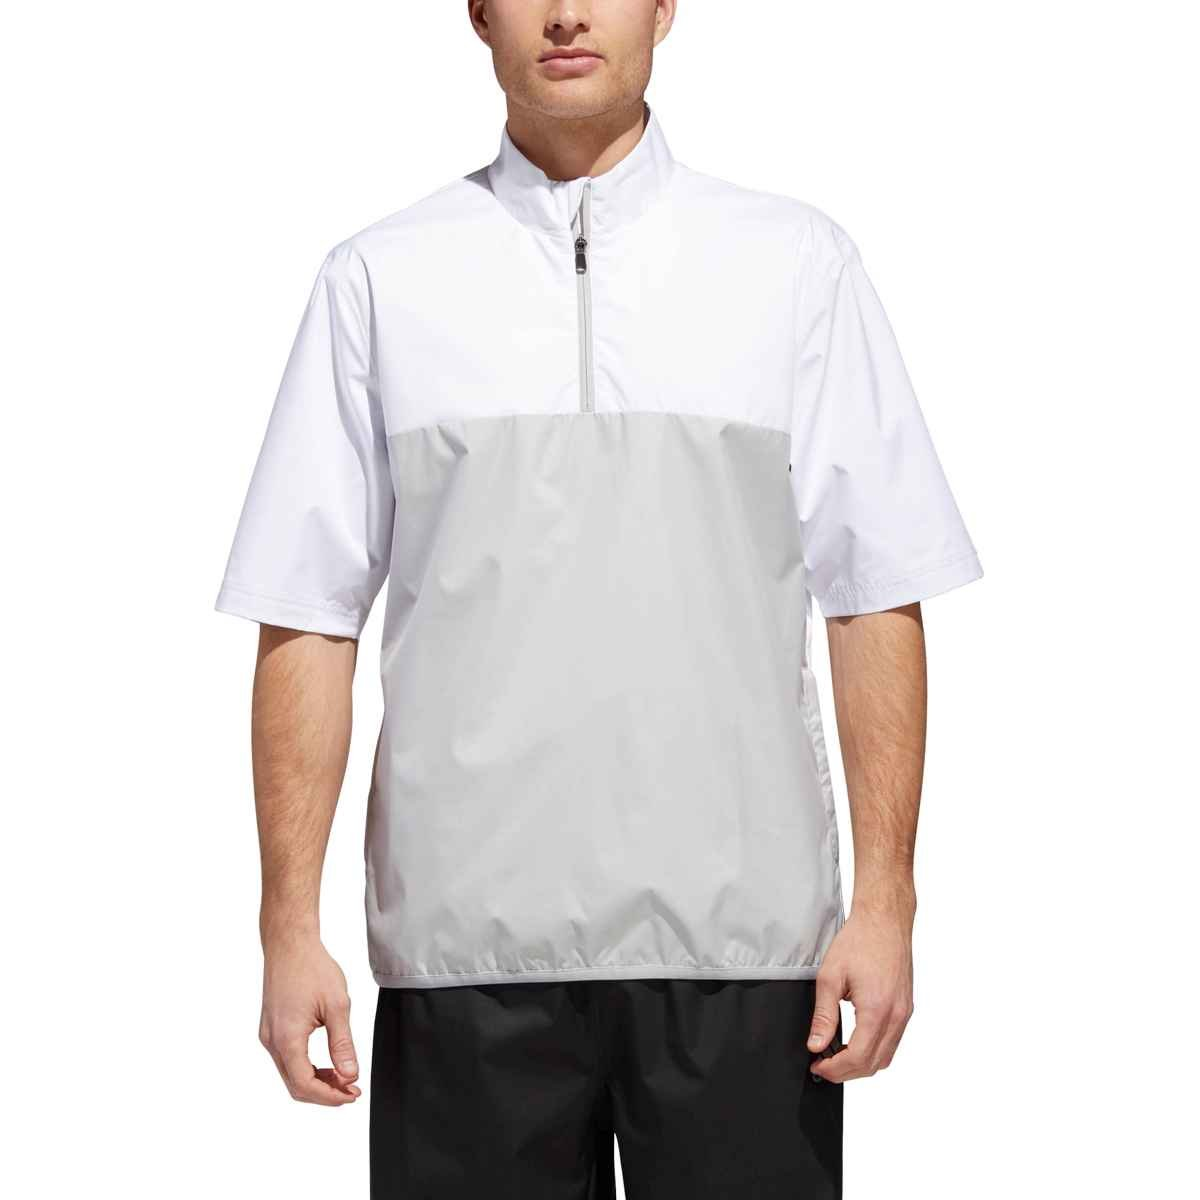 adidas Golf Climatstorm Provisional Short sleeve Rain Jacket, White, XX-Large by adidas